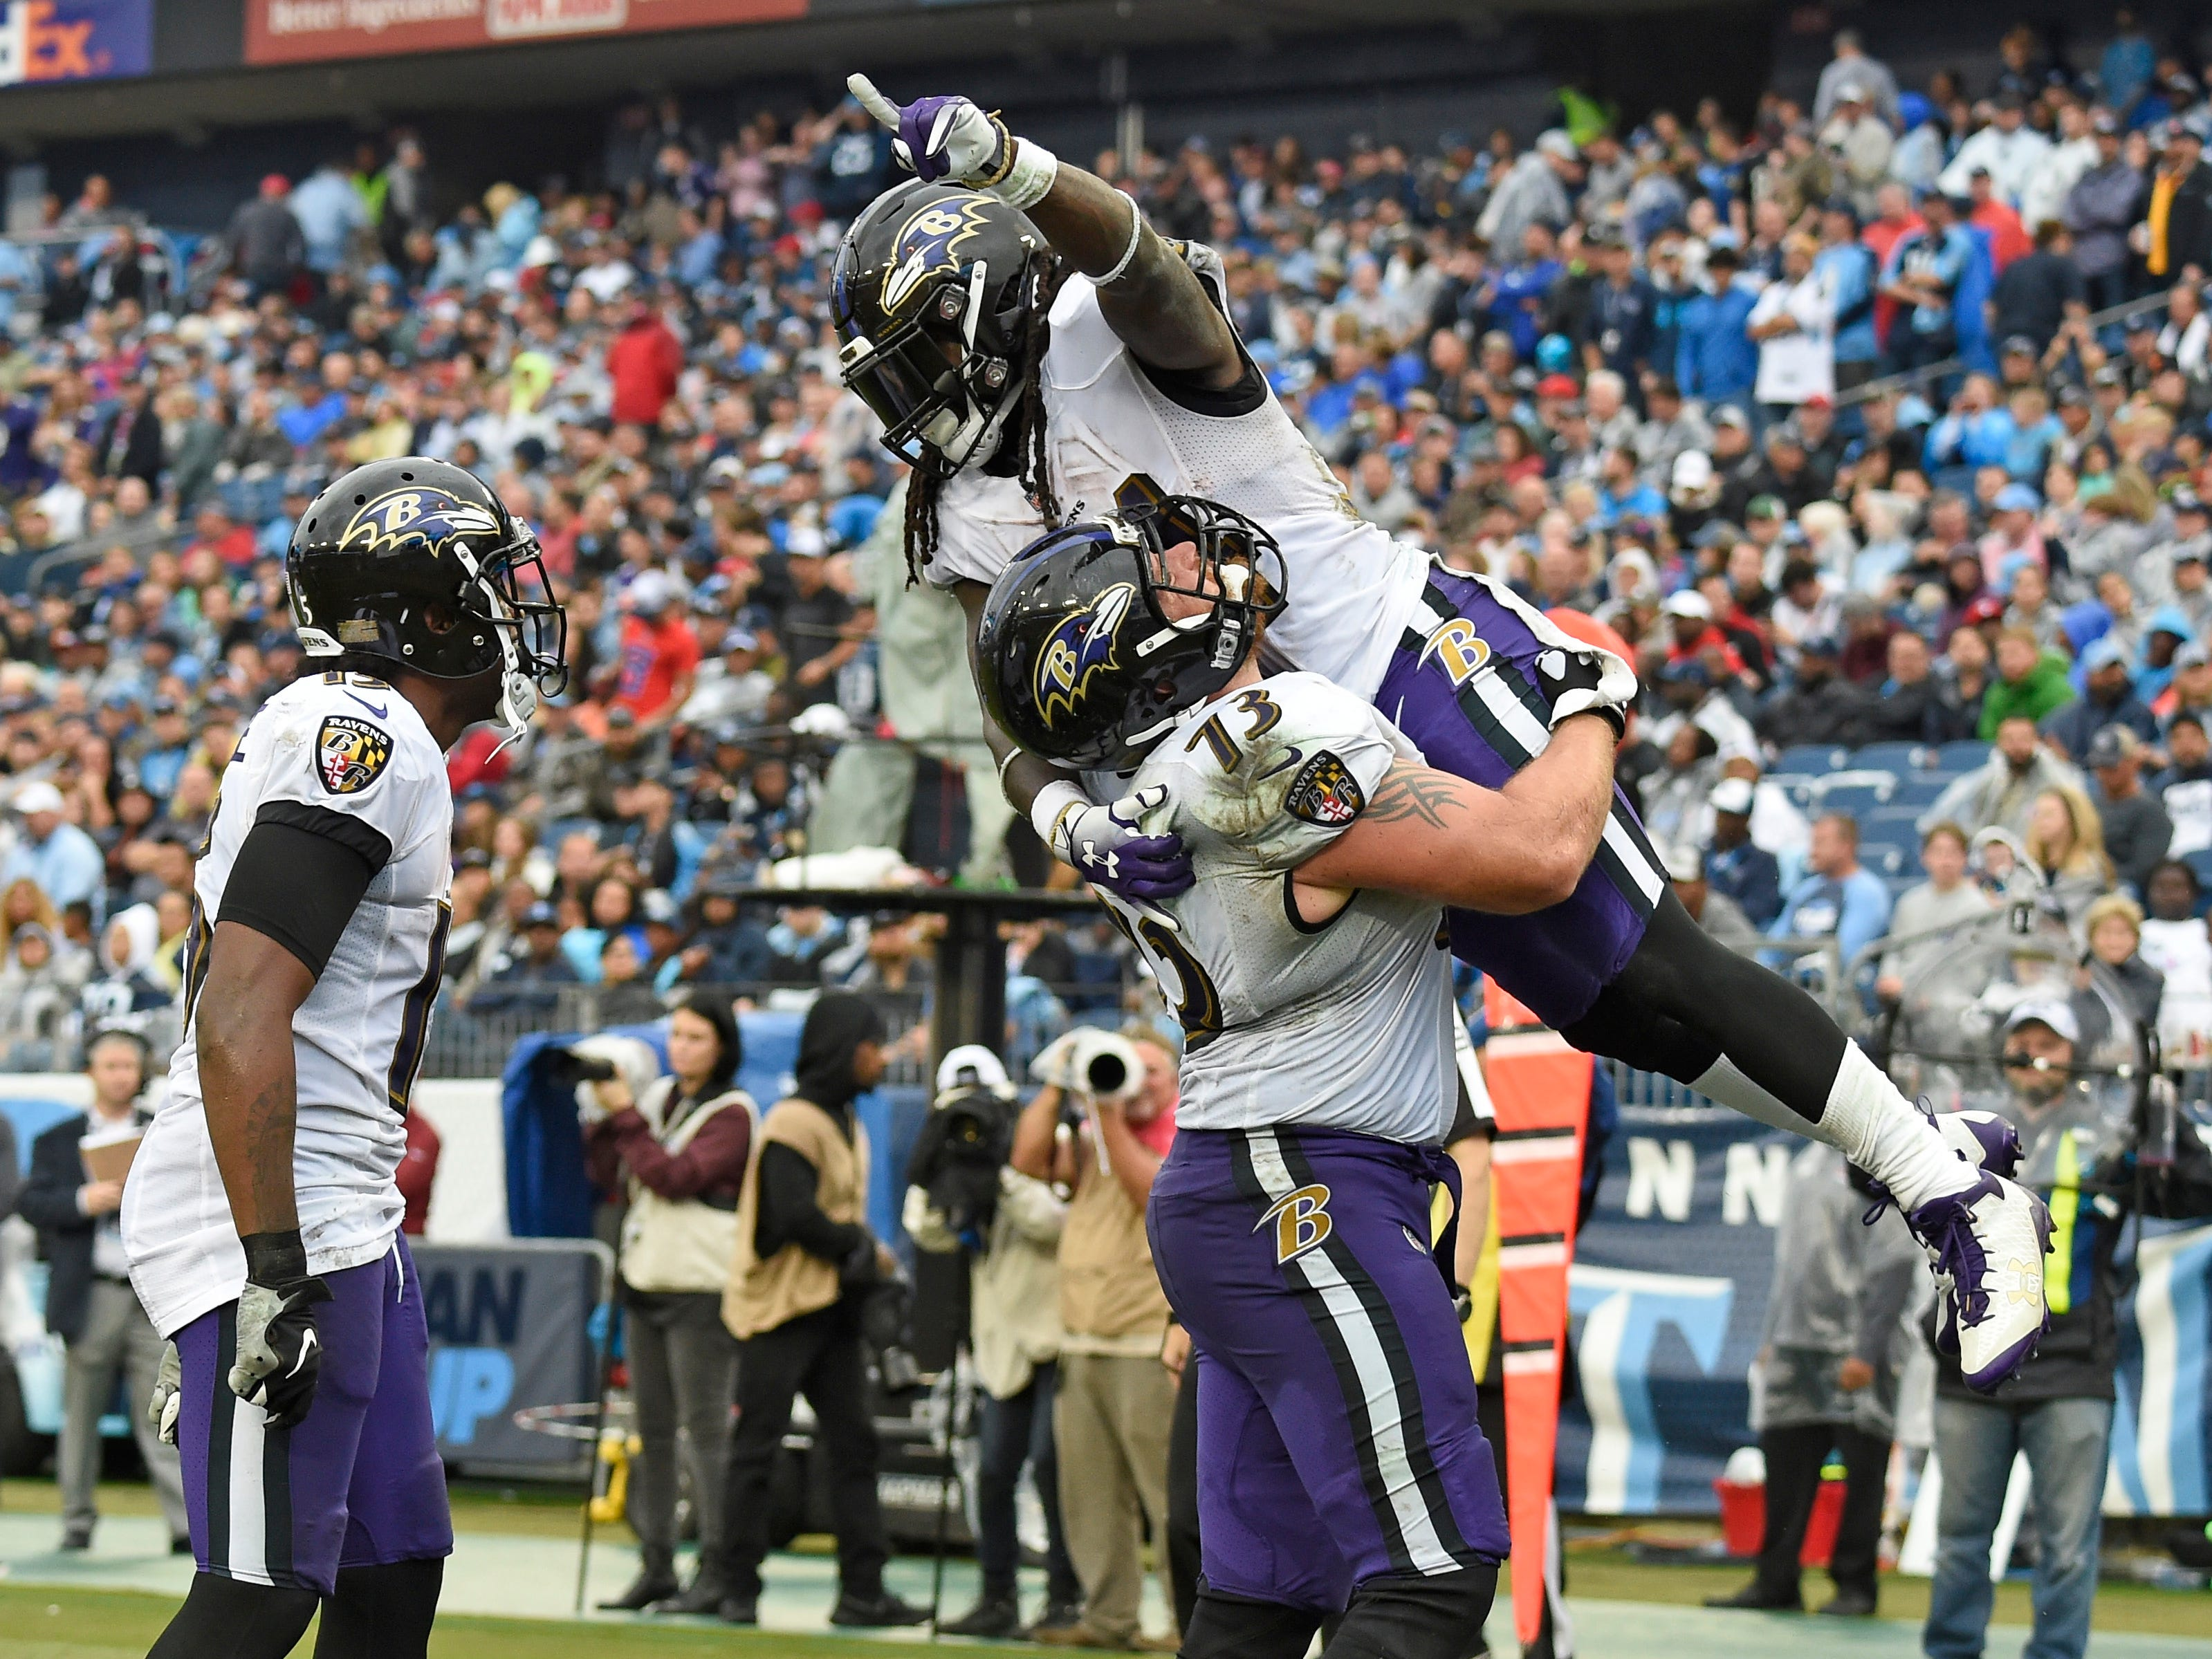 Ravens wide receiver John Brown (13) celebrates his touchdown with Ravens offensive guard Marshal Yanda (73) in the second quarter at Nissan Stadium Sunday, Oct. 14, 2018, in Nashville, Tenn.